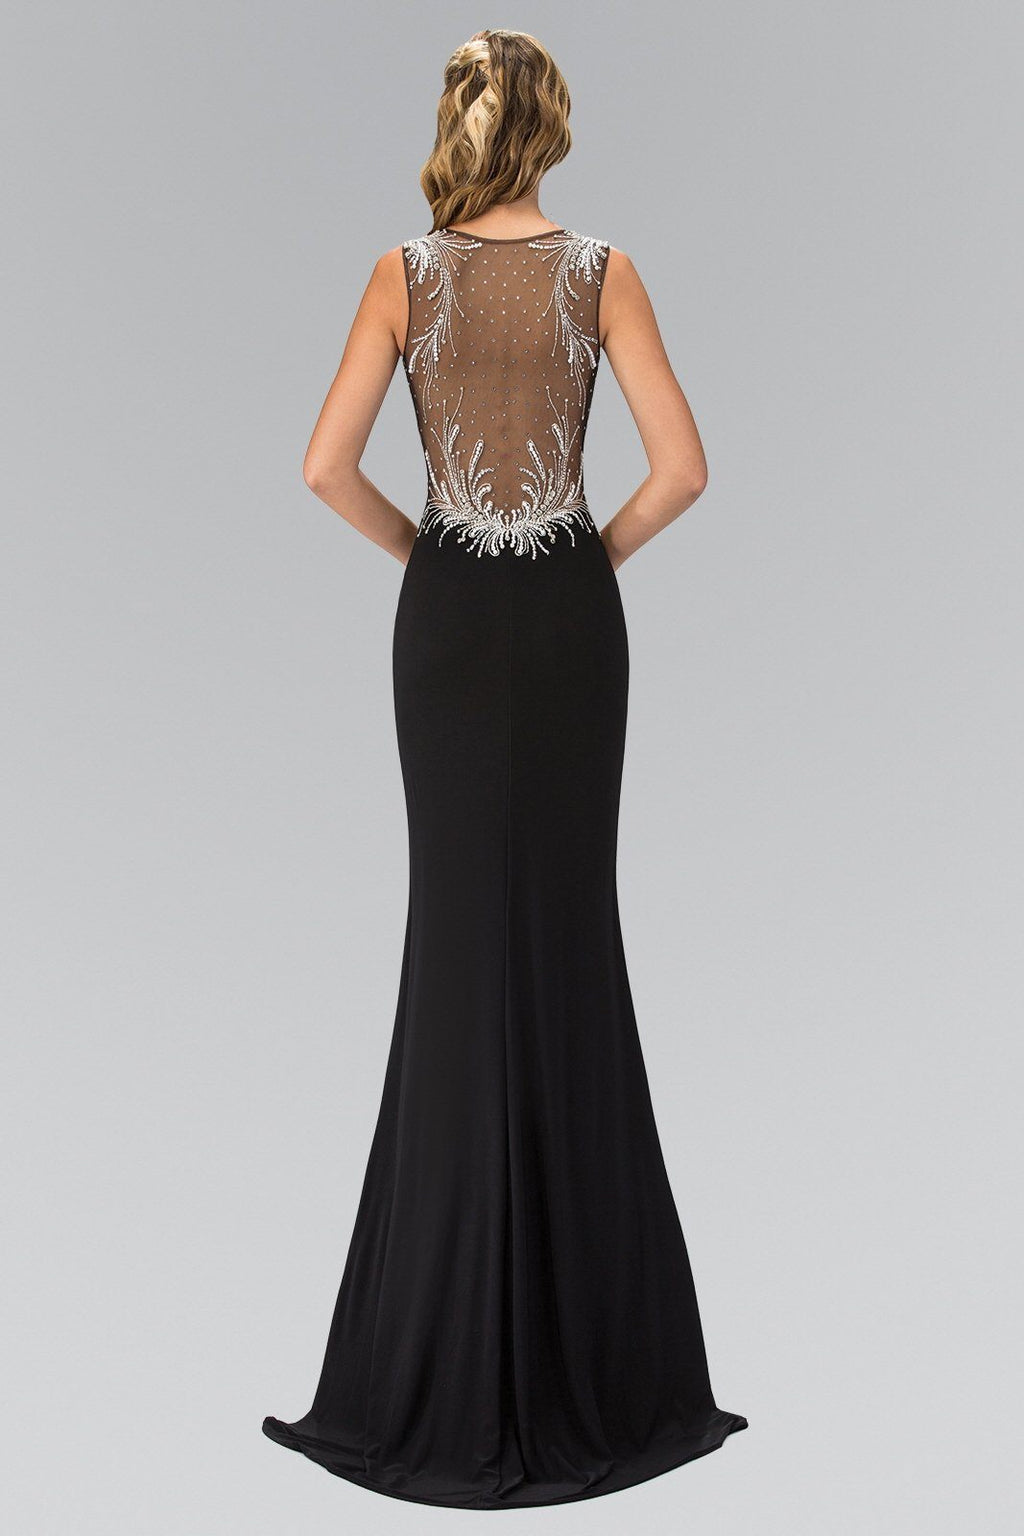 Black sexy evening gown gls 1358-Simply Fab Dress